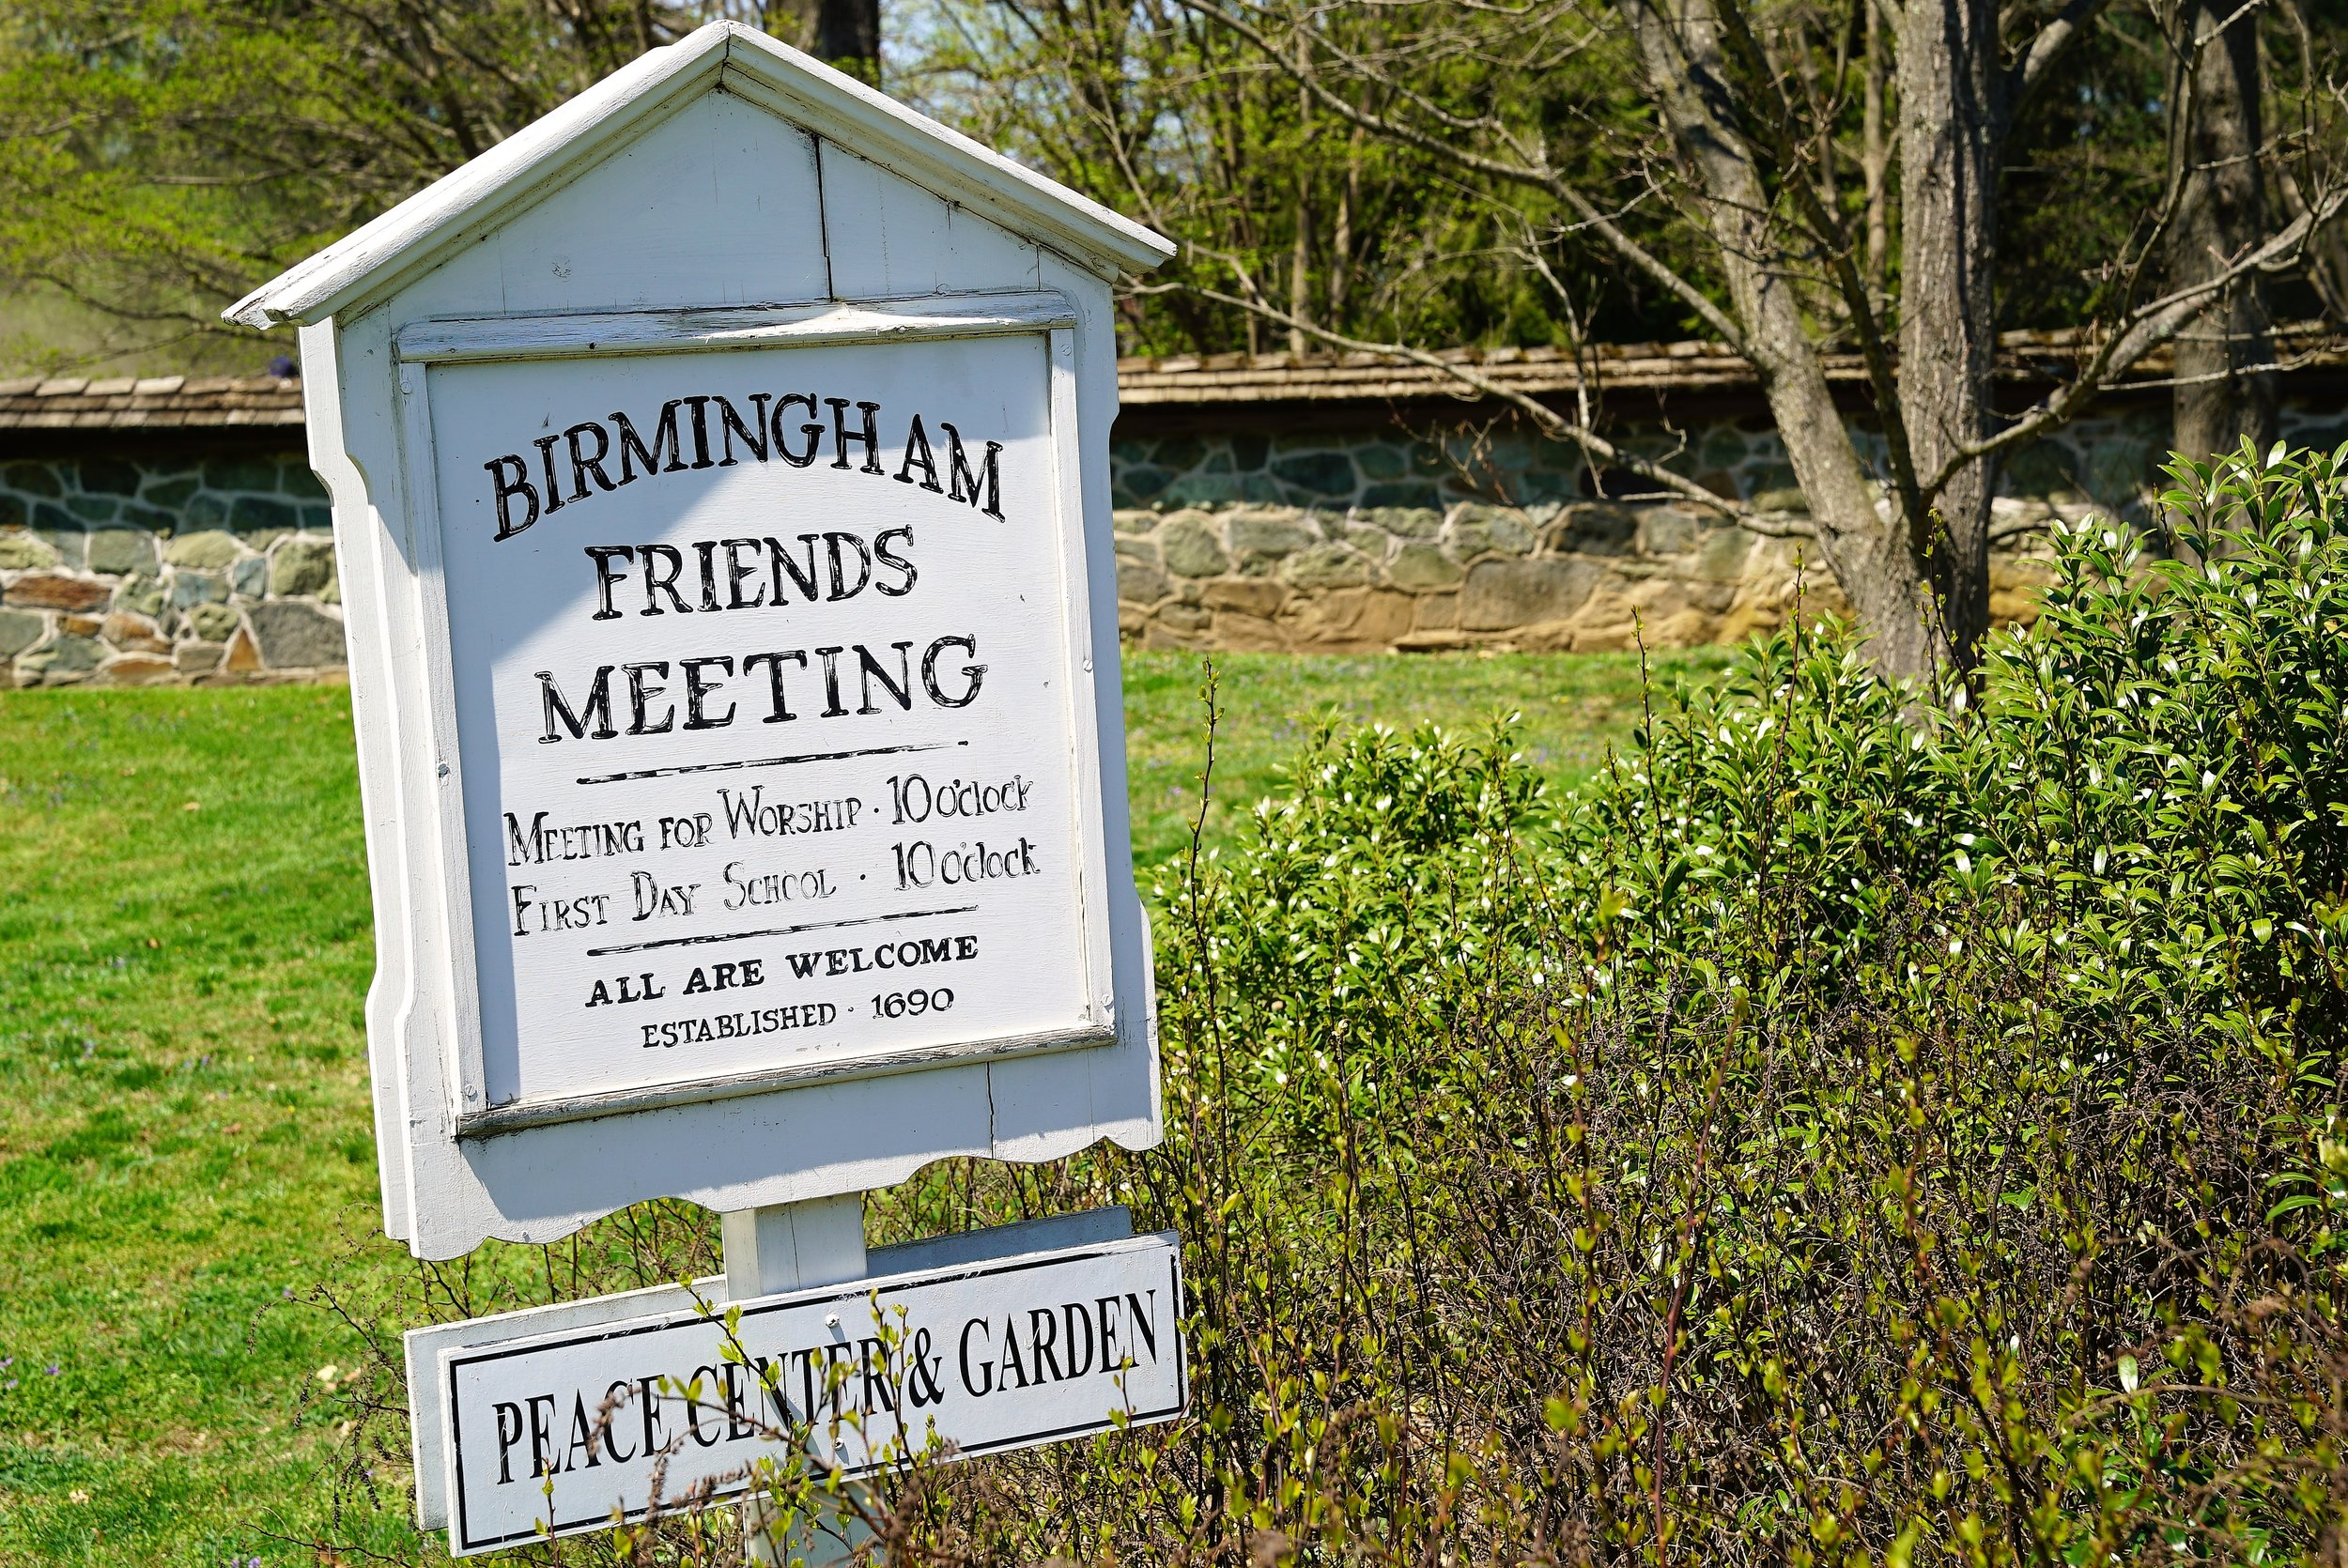 Roadside sign to Birmingham Friends Meeting. West Chester, Pennsylvania.